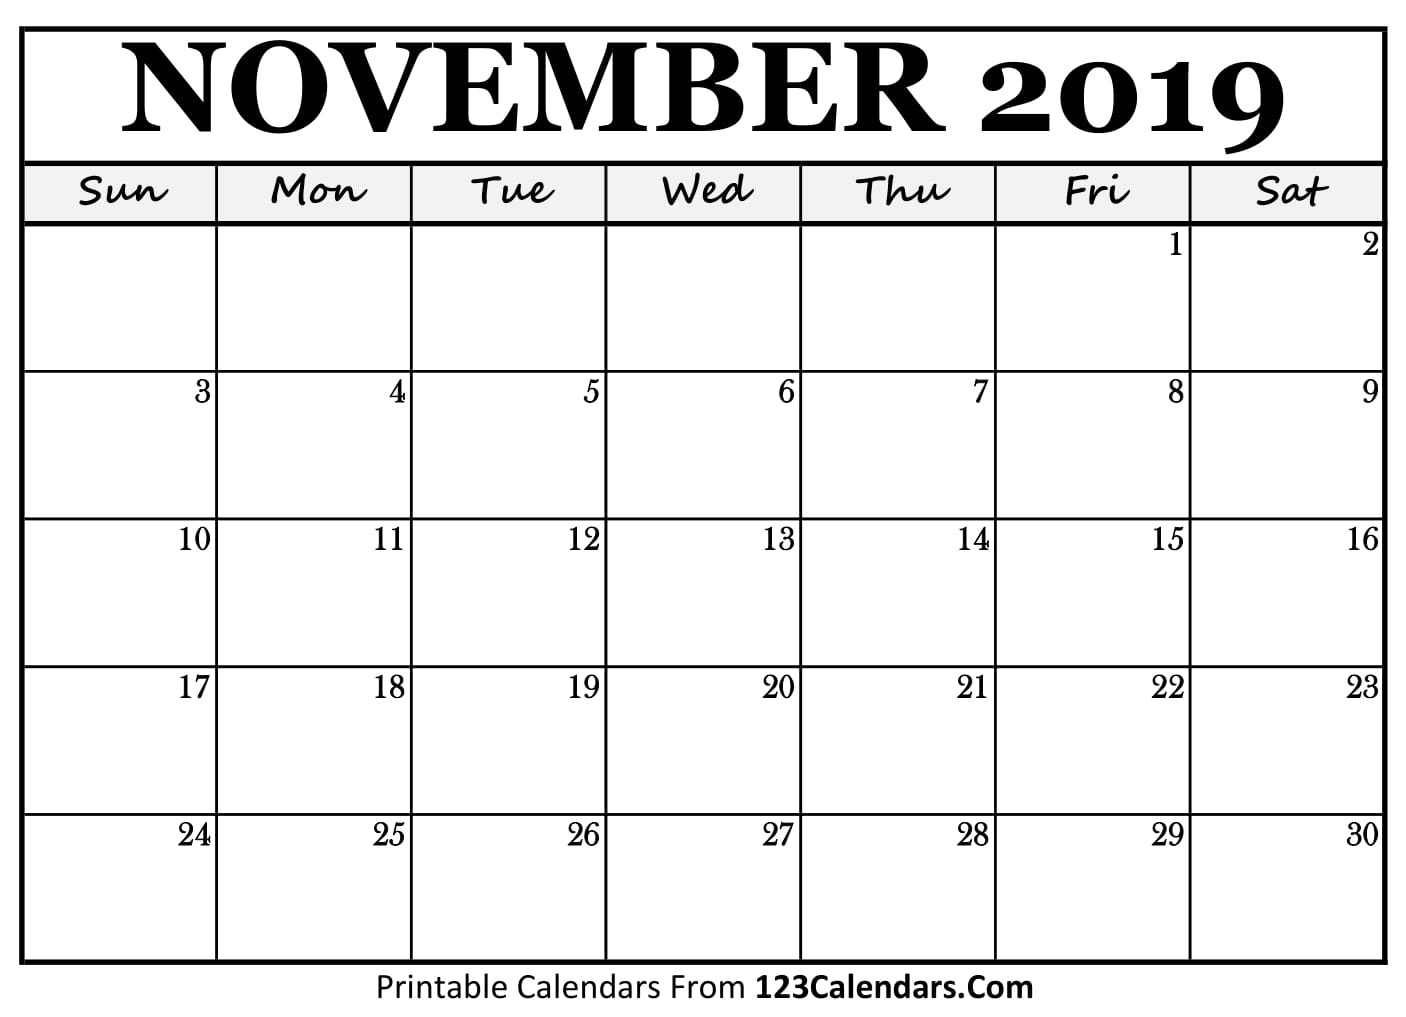 picture regarding Printable November Calendars identified as November 2019 Printable Calendar